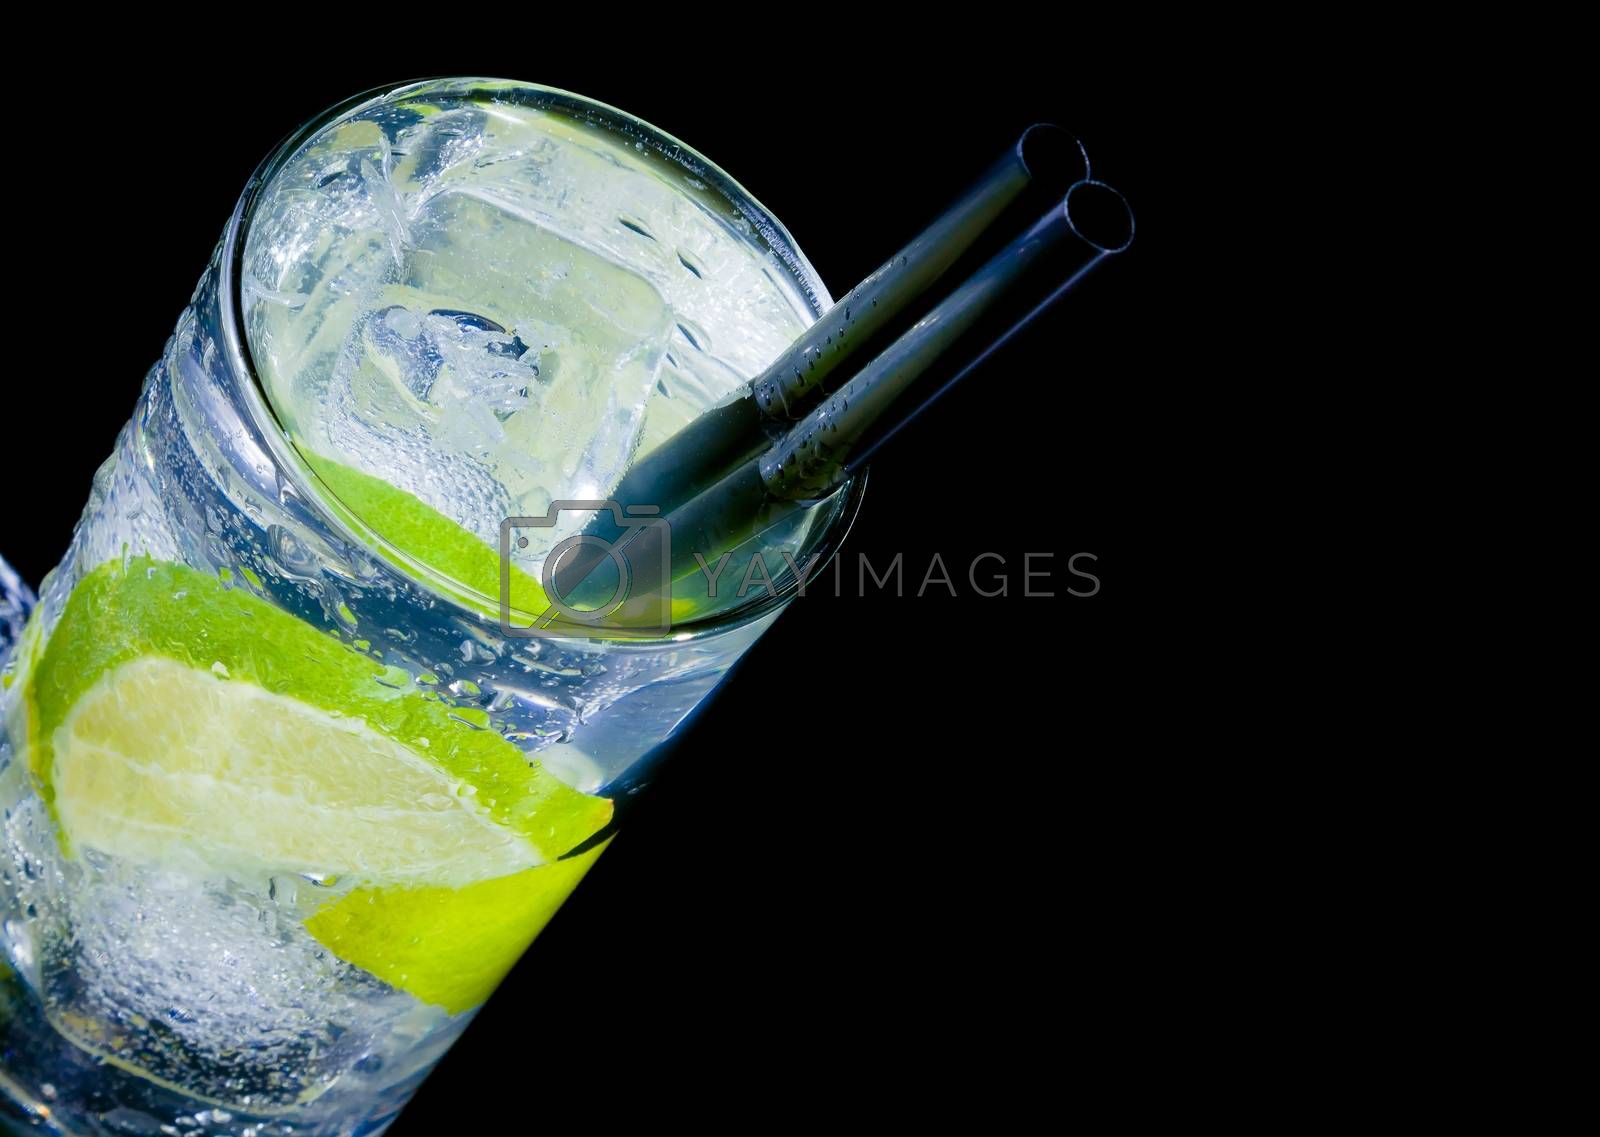 top of view of cocktail with ice and lime slice and space for text by donfiore